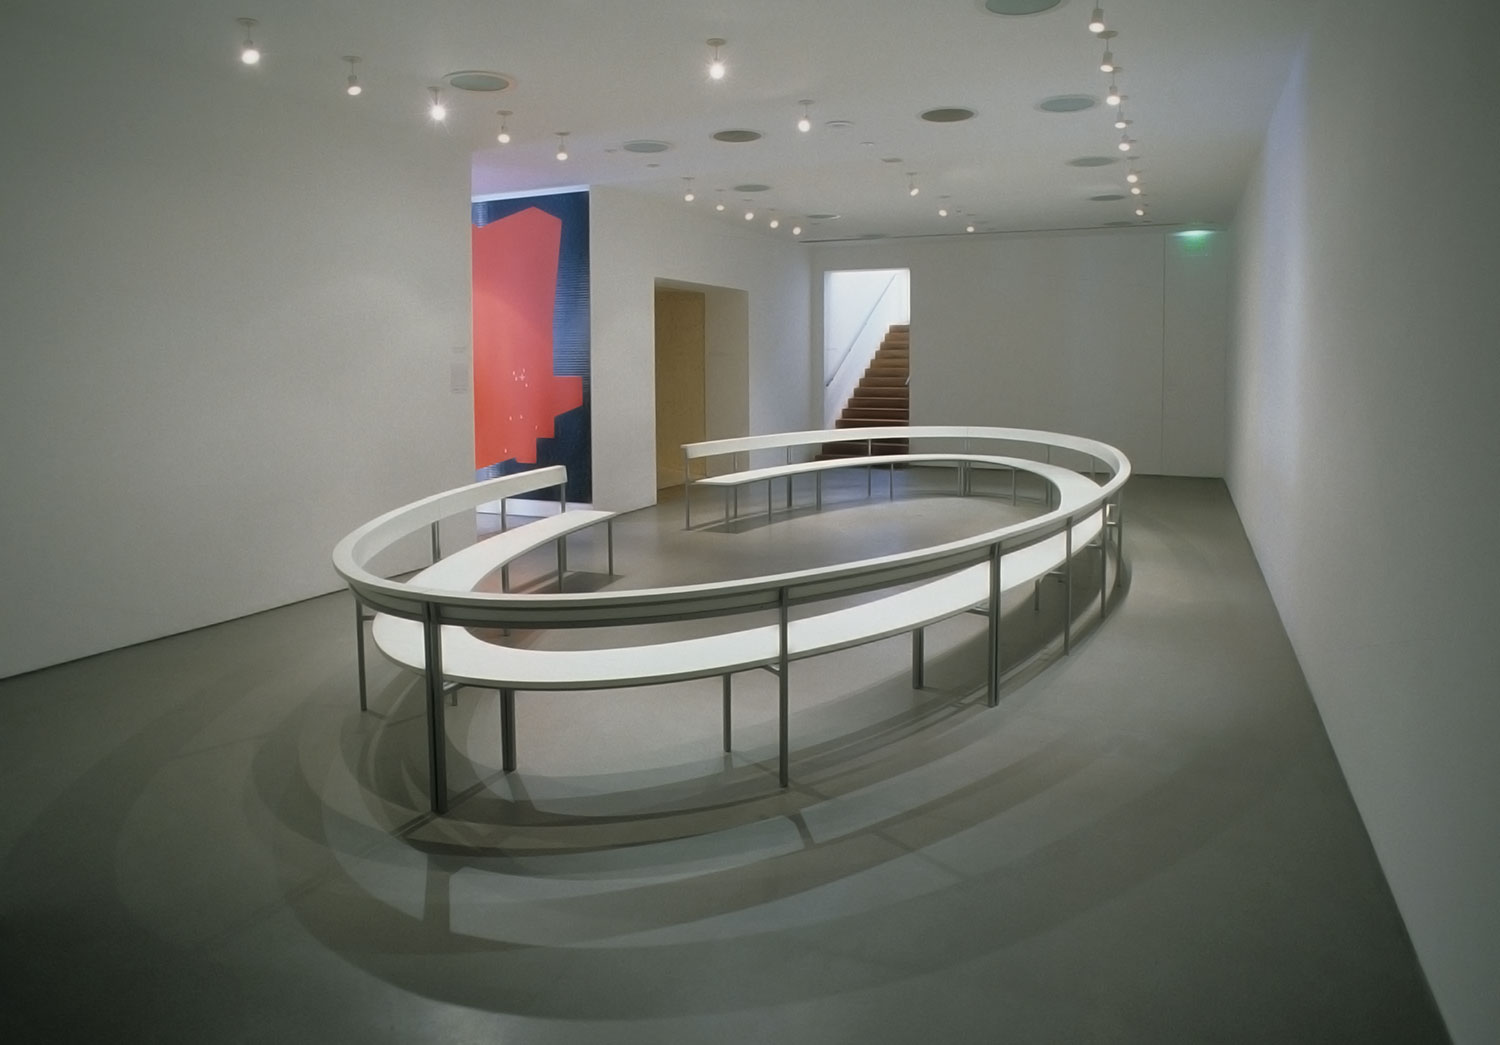 Langlands & Bell, 'Eclipse' (1998, wood, steel, lacquer)